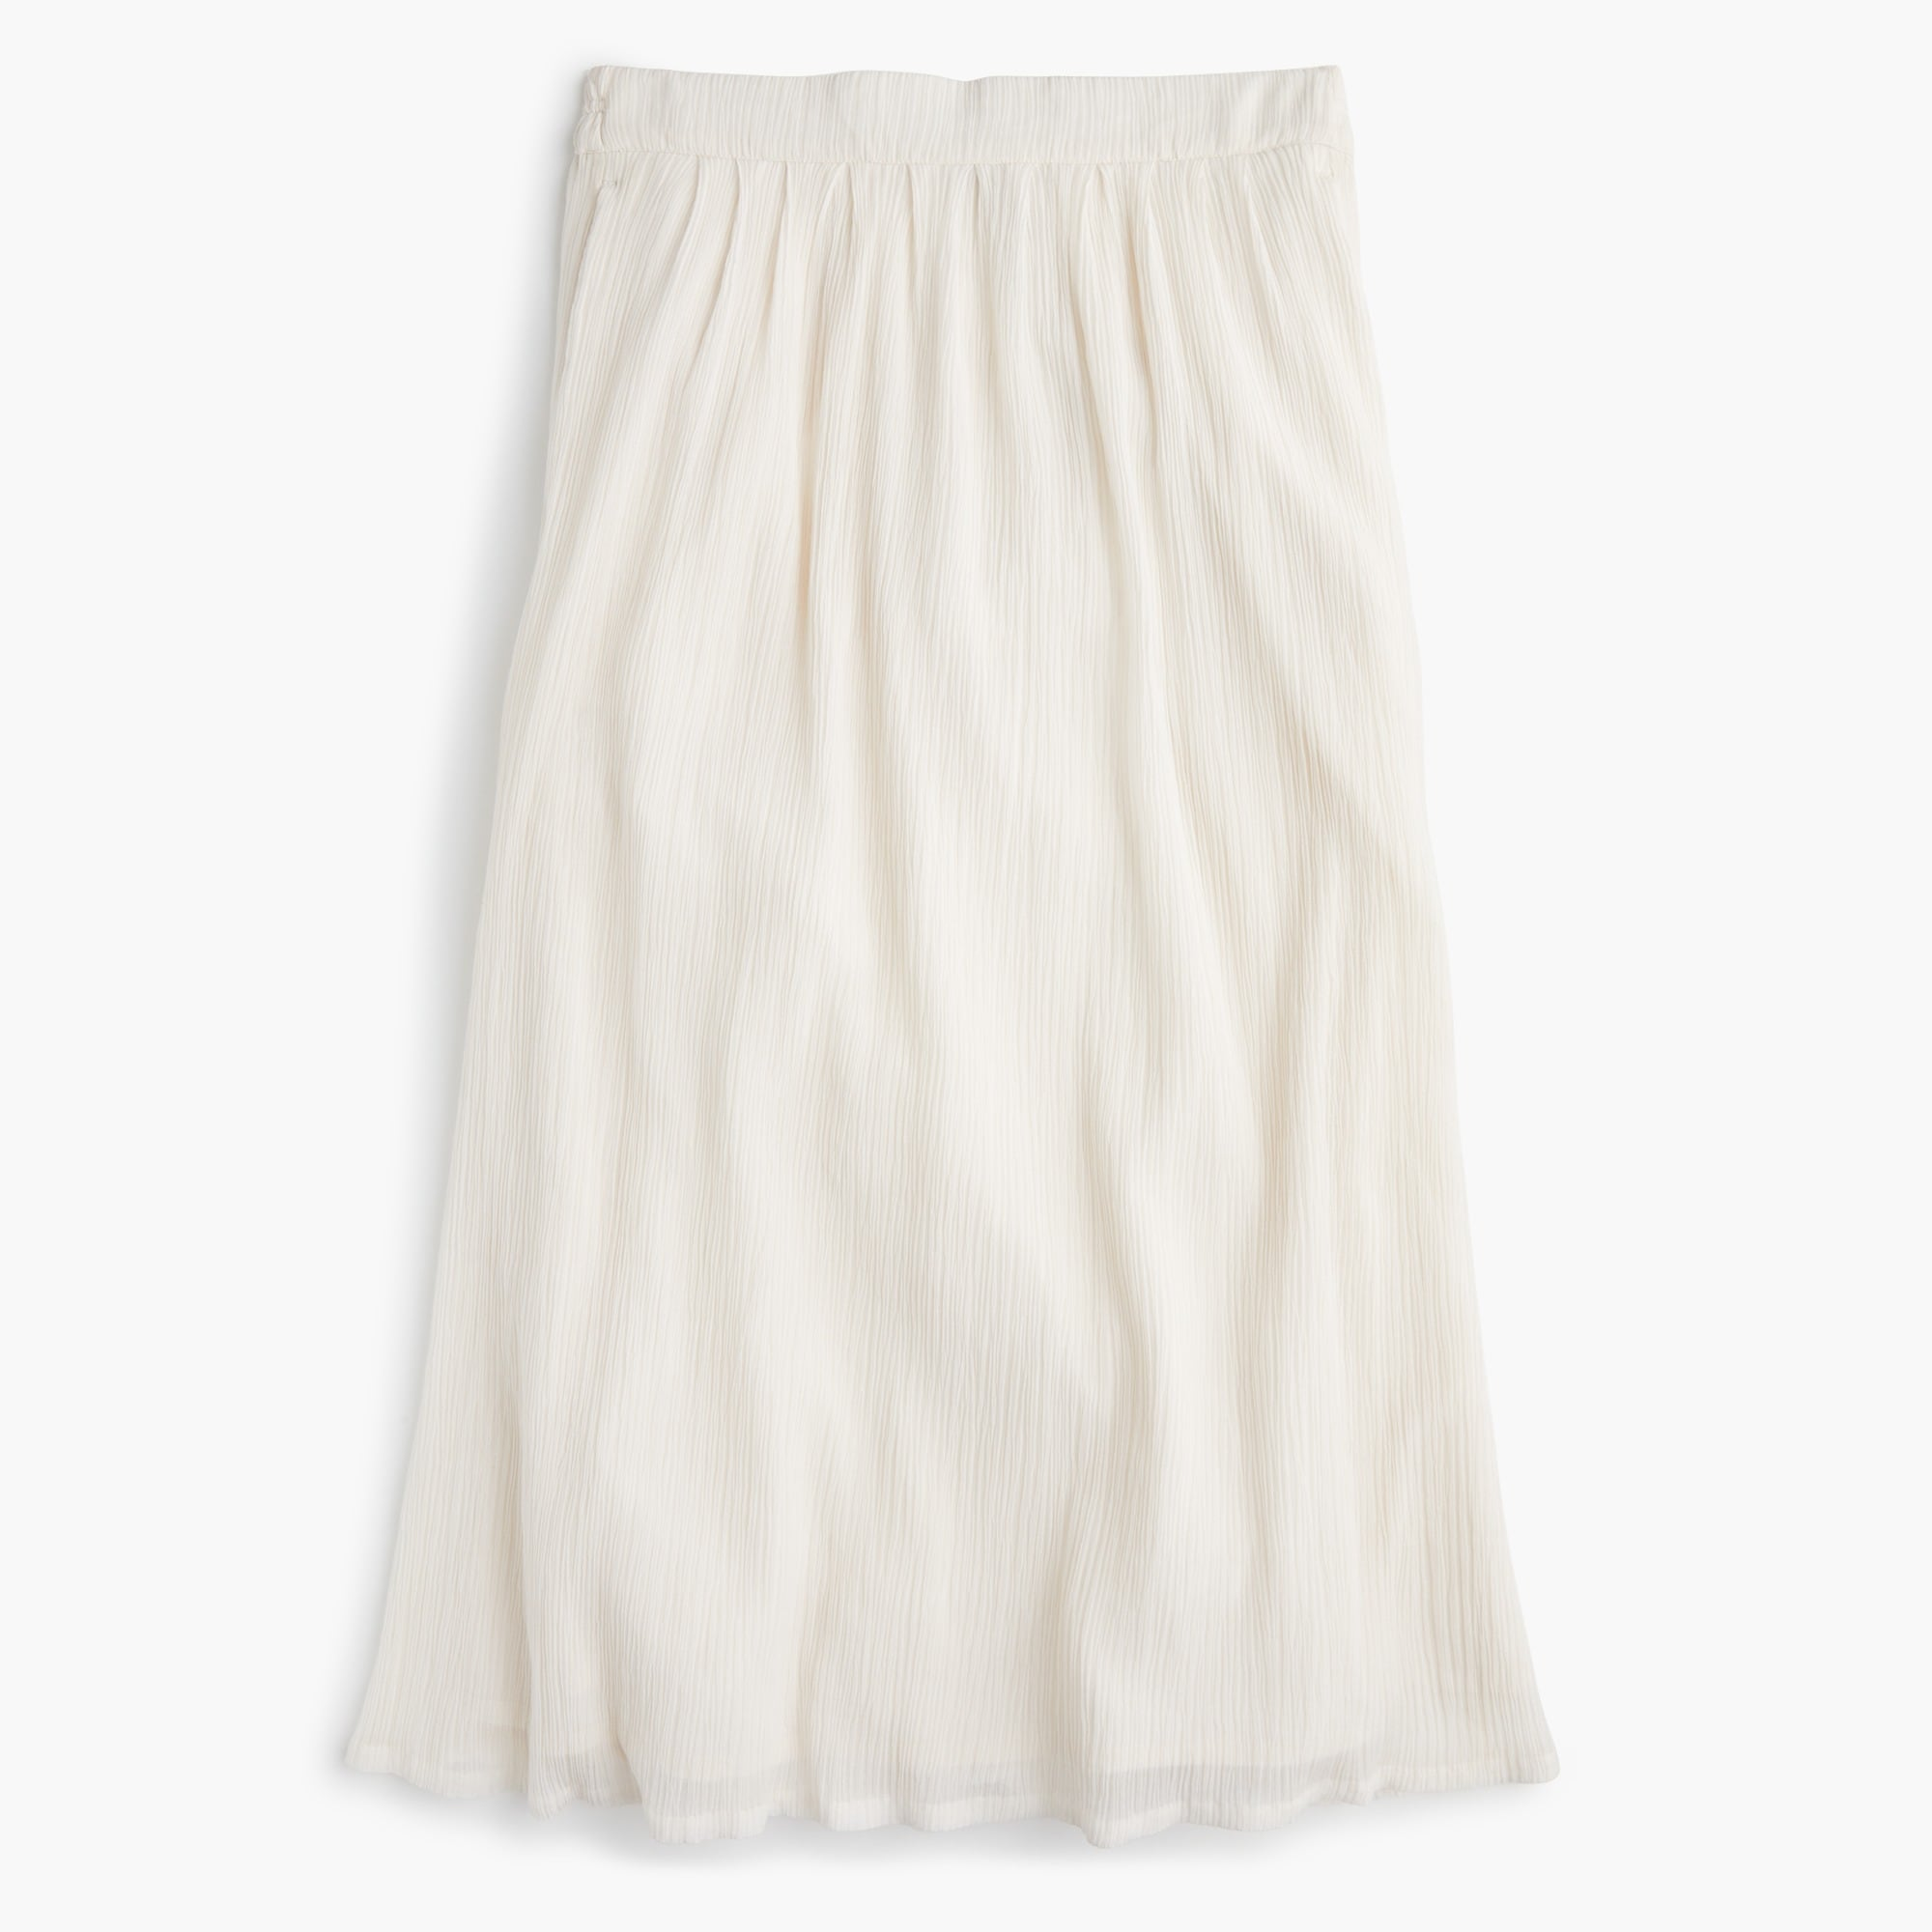 Image 2 for Petite crinkly pull-on midi skirt